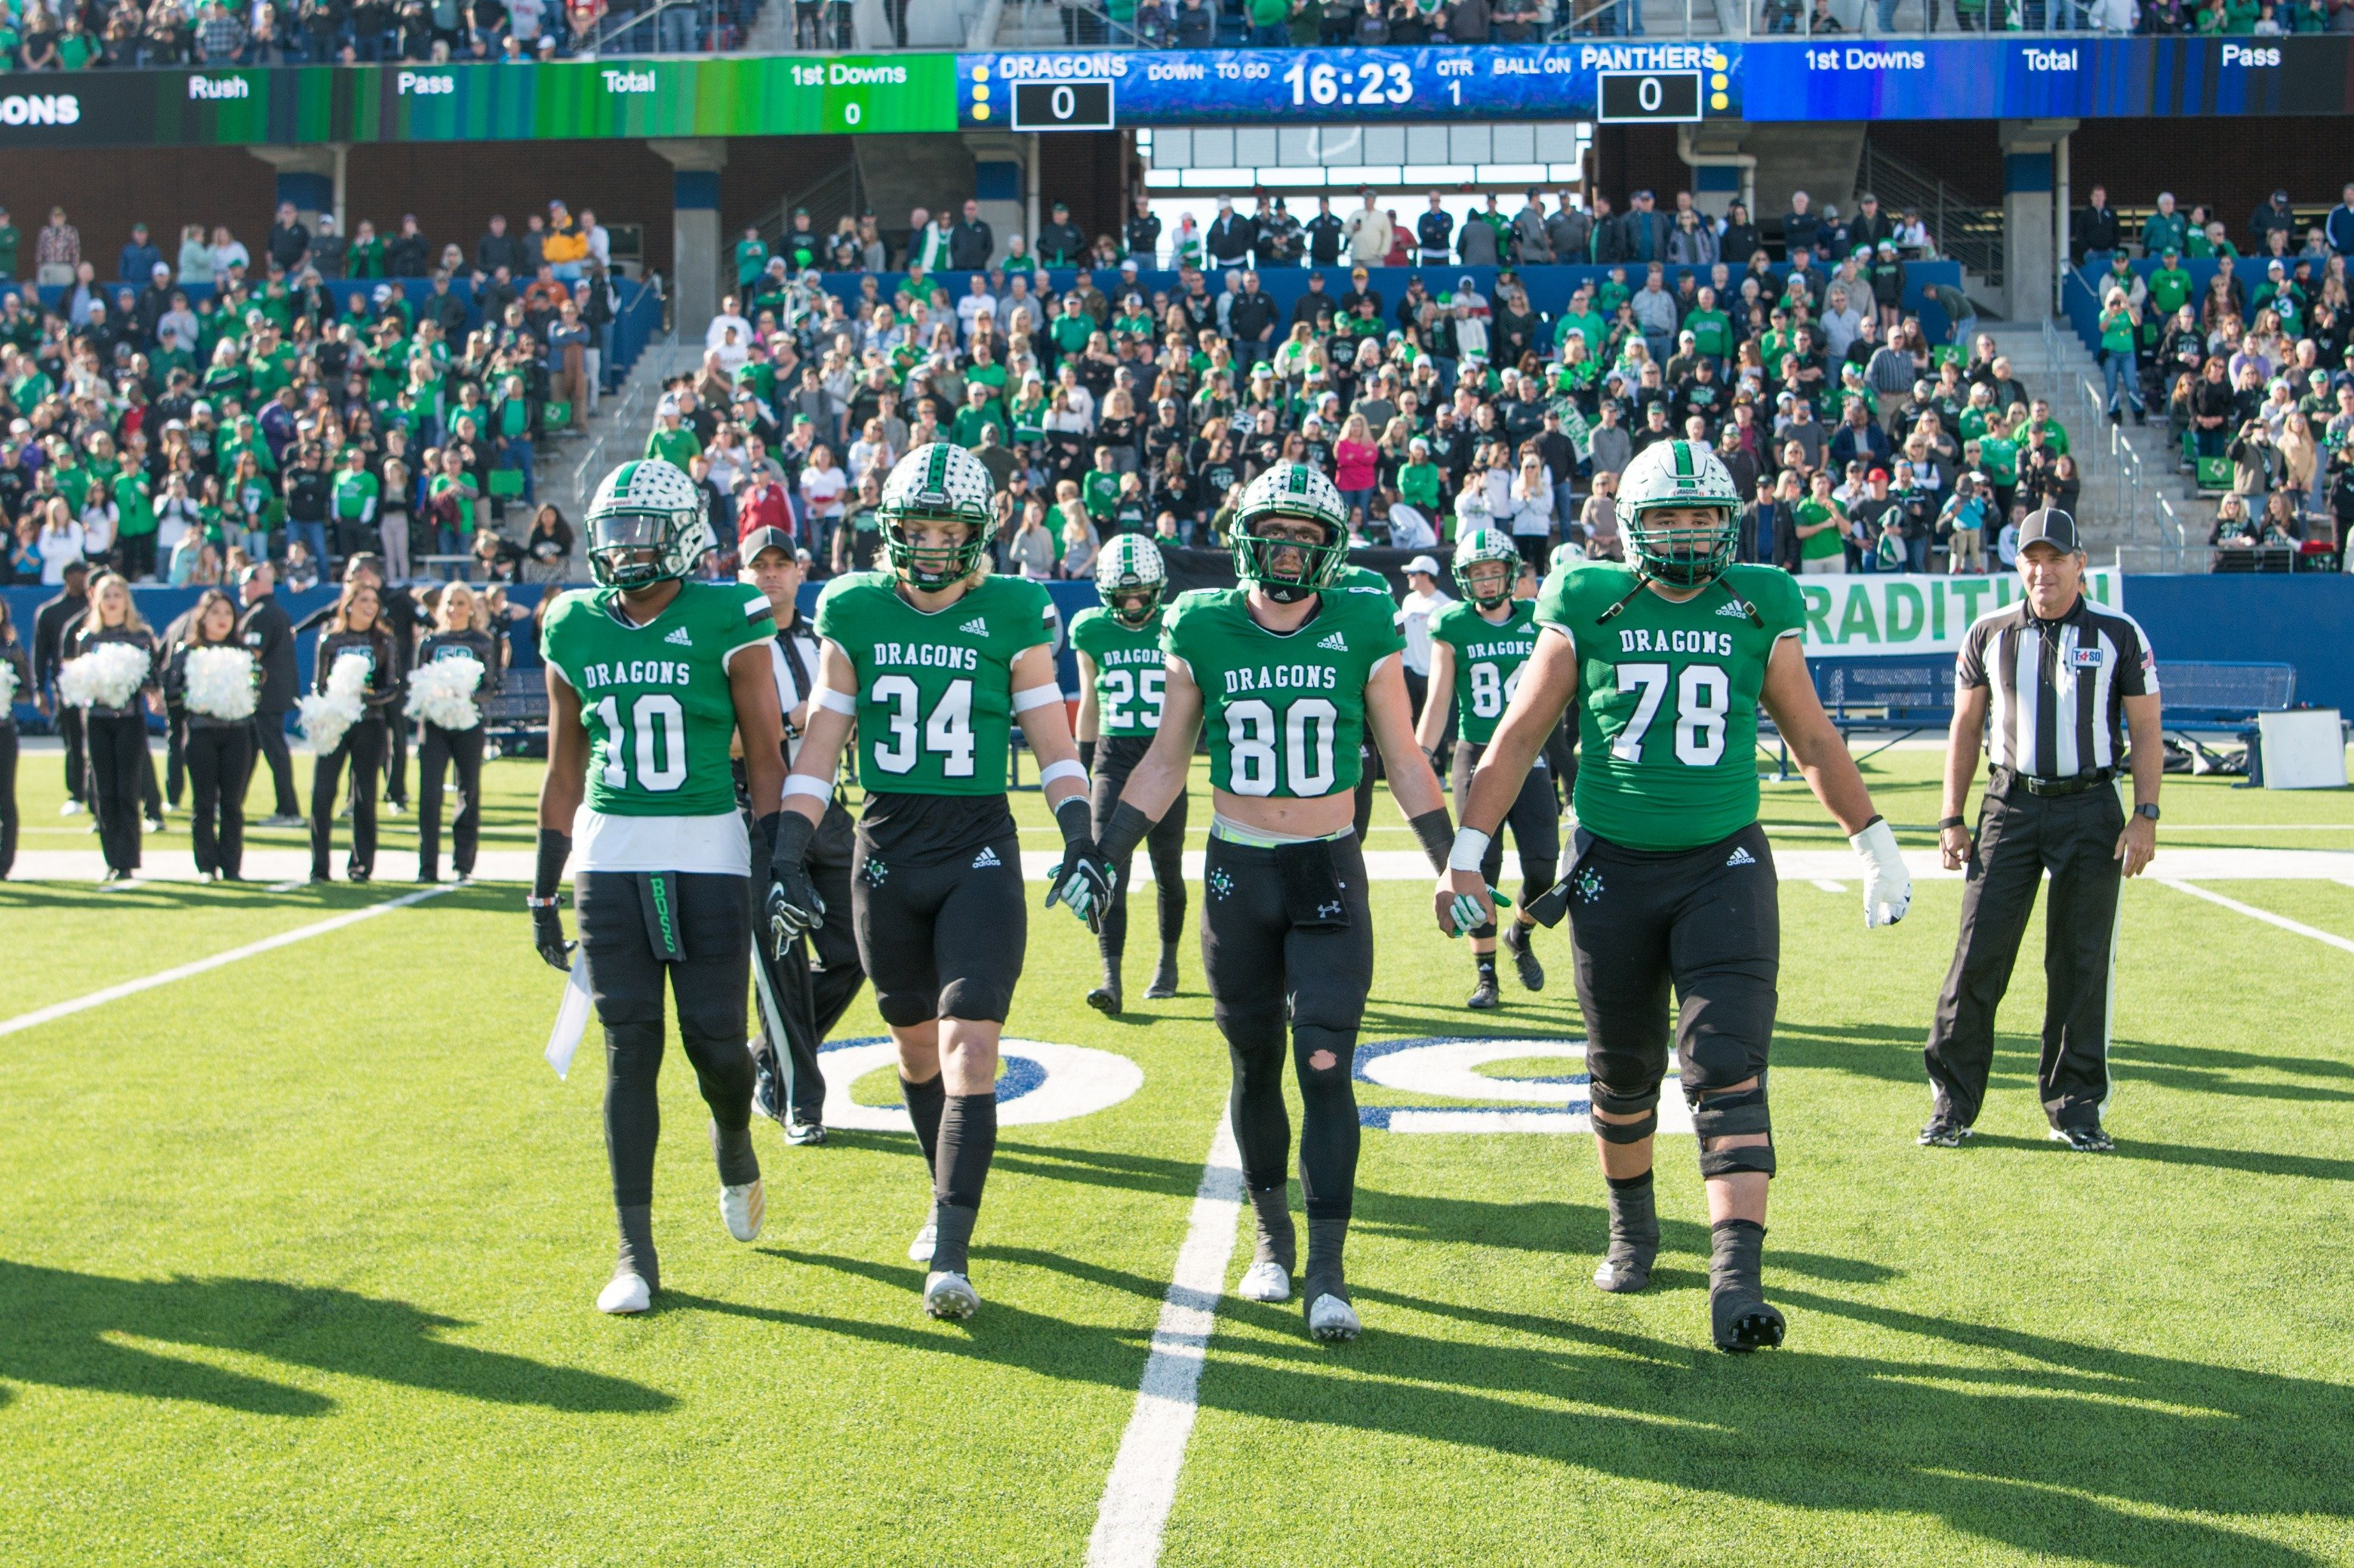 Southlake Carroll Named Most Dominant Texas Hs Football Team Southlake Style Southlake S Premiere Lifestyle Resource